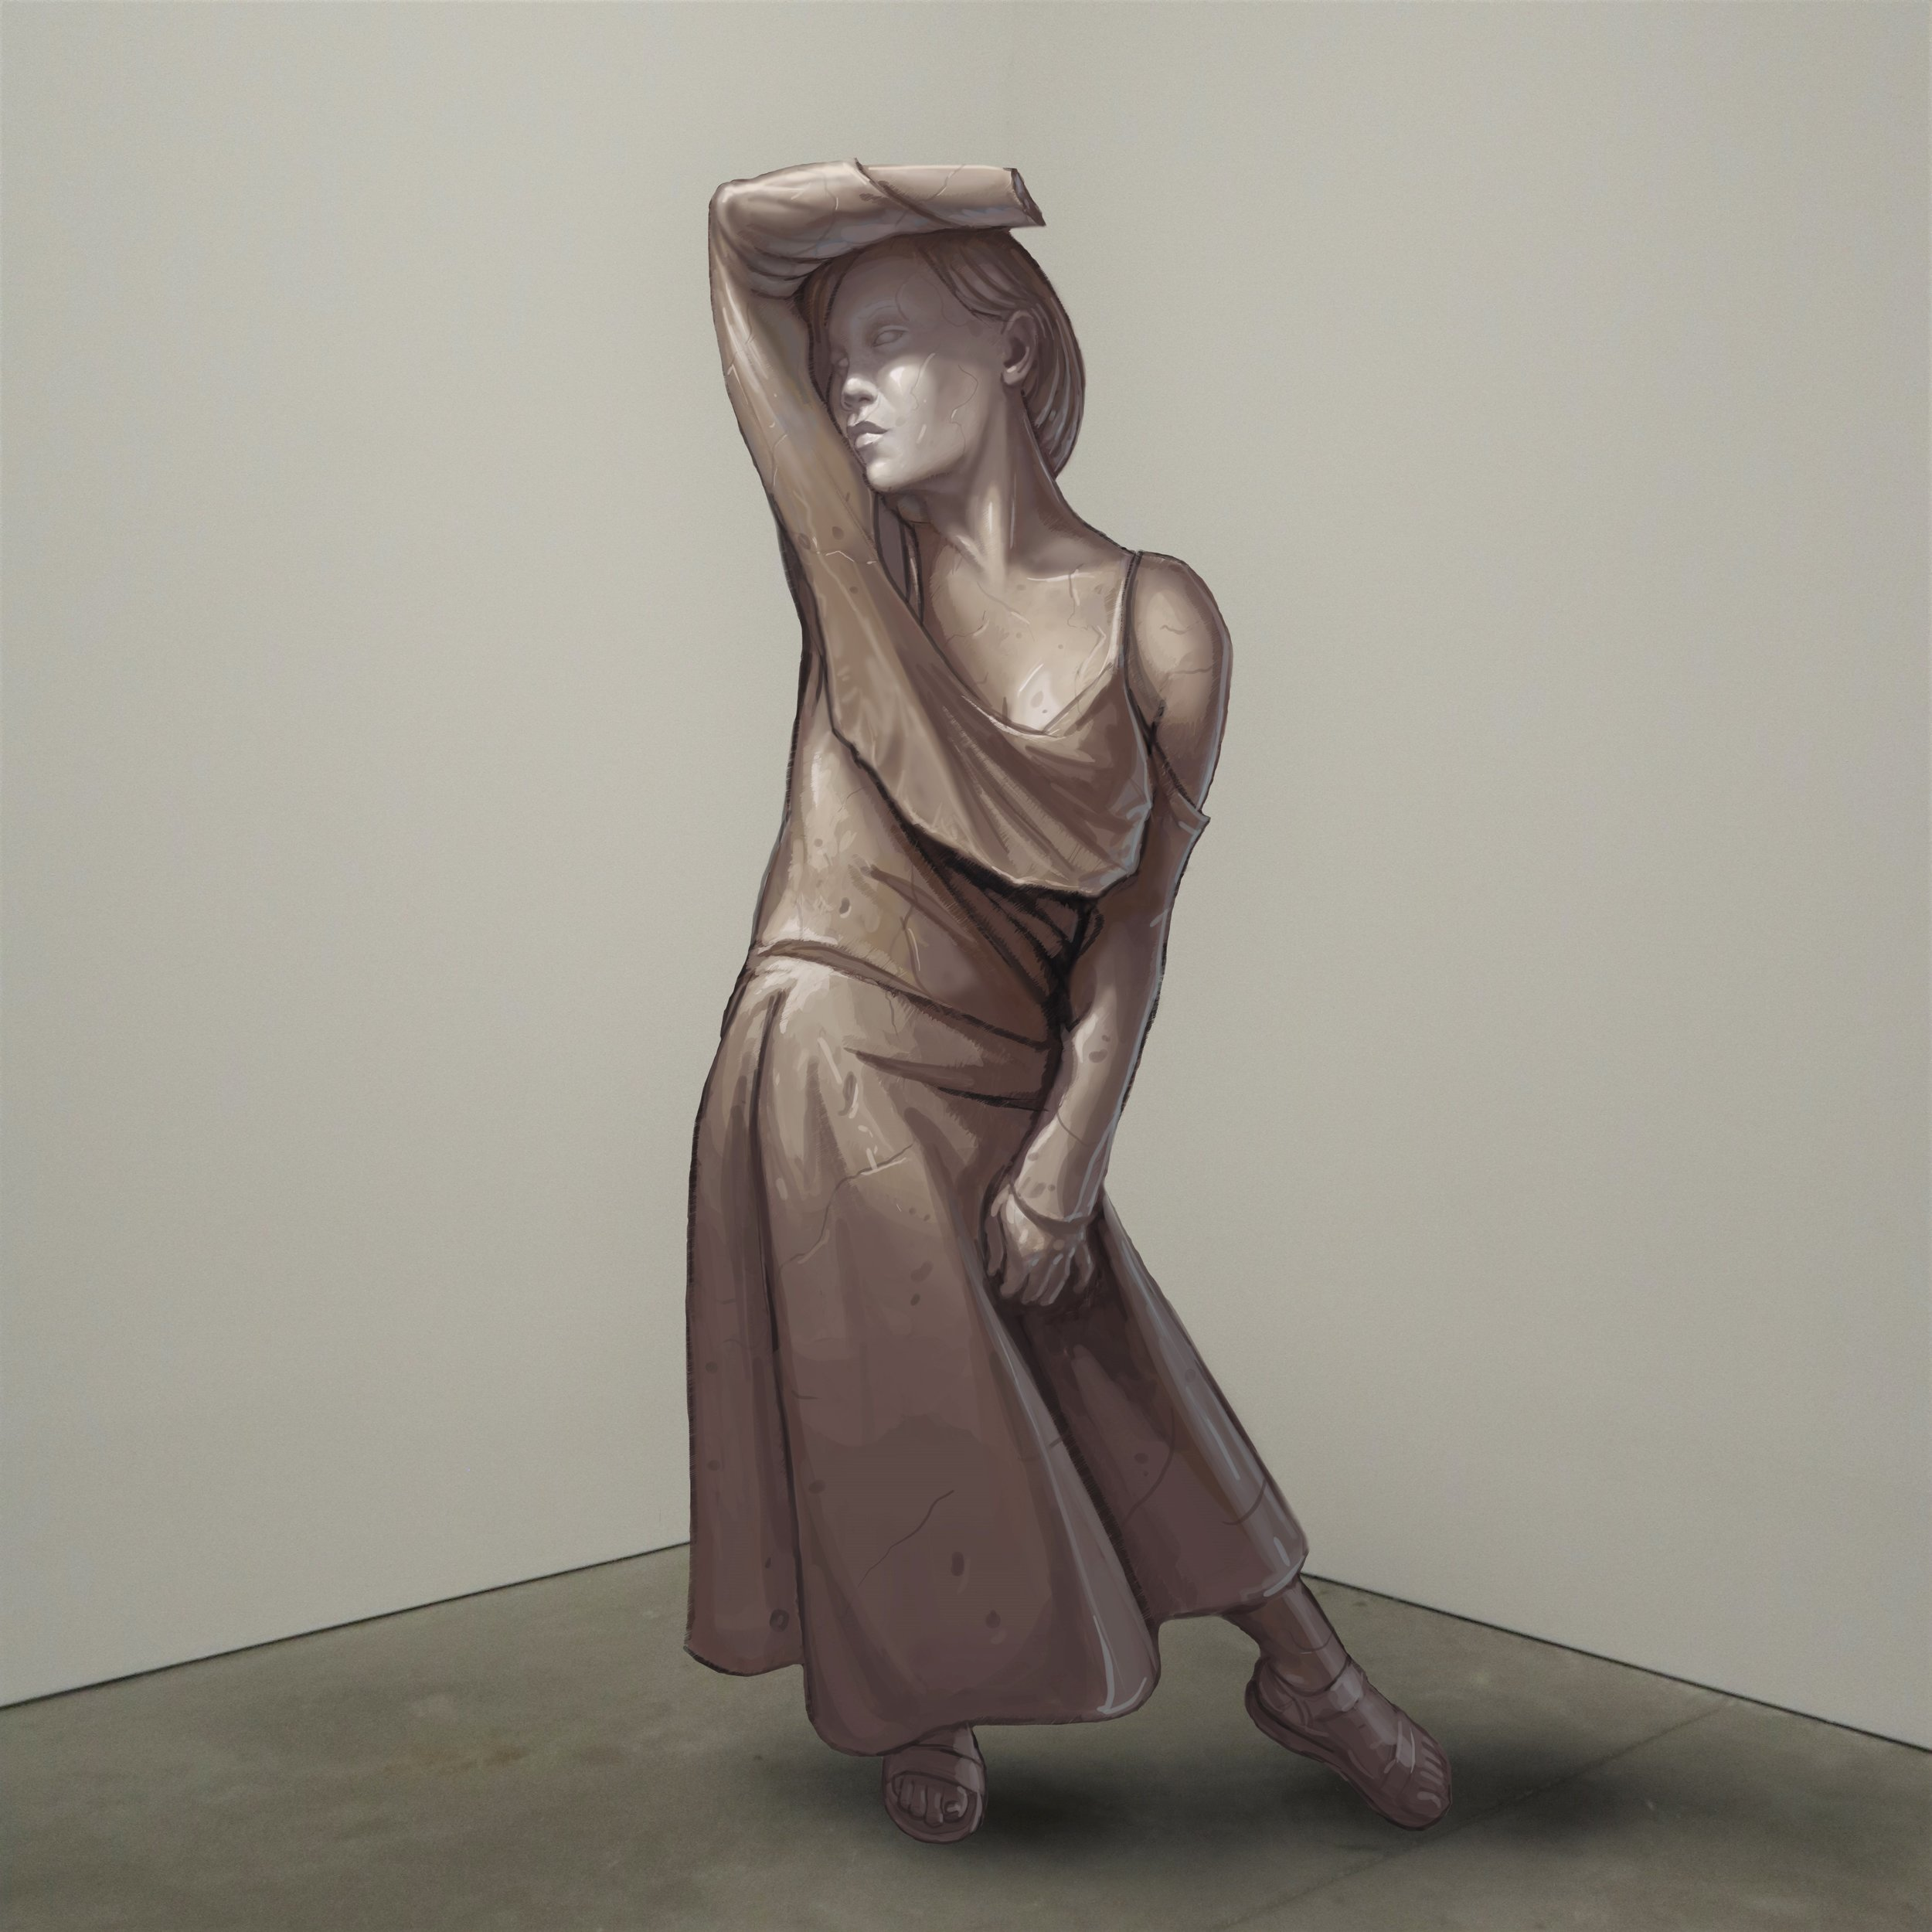 """Artemis,"" marble, Institute of Contemporary Art, Boston   2018  JPG  During an installation at the Institute of Contemporary Art in Boston, viewers were invited to imagine themselves as statues in the ICA's permanent collection. Participants were photographed posing as a statue they felt represented themselves, created a name for their fictional statue, and selected a stone from which their statue would be made. Professional and amateur digital artists were commissioned to create renderings of the statues, which were superimposed on photos of the ICA's permanent collection gallery space."